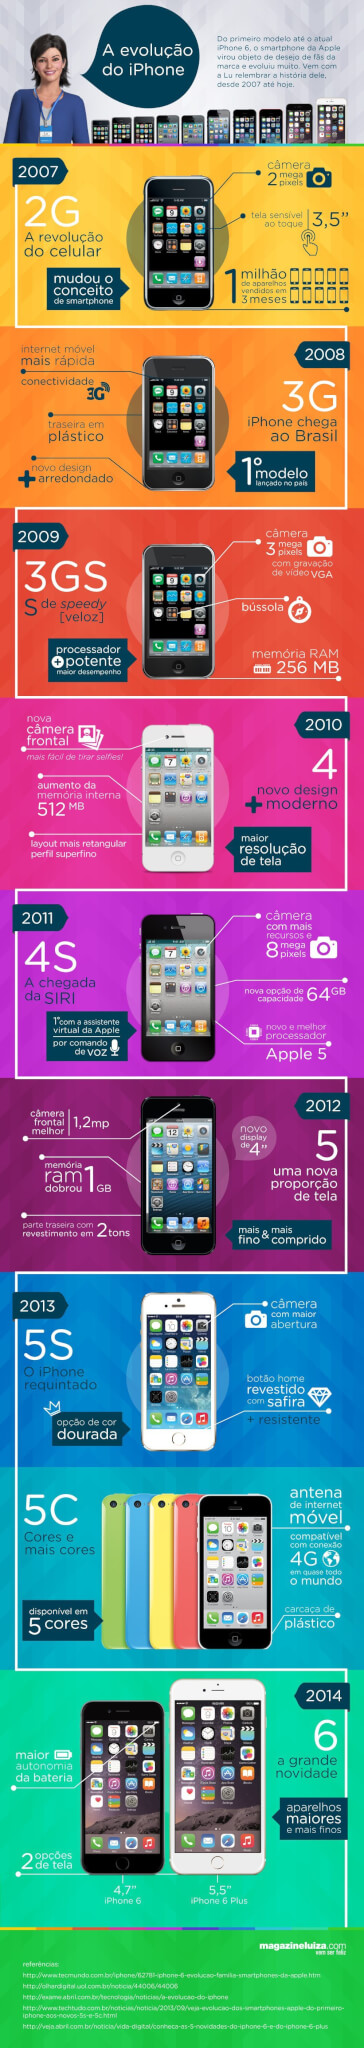 infogrfico evoluo iphone final - Anuncie